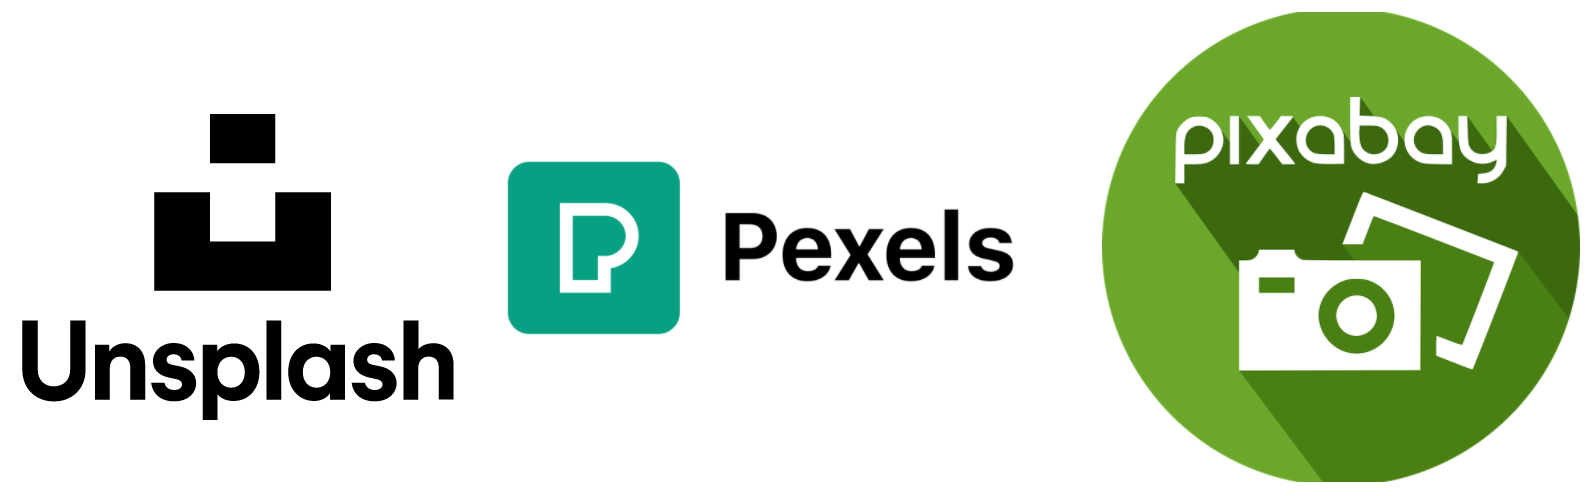 The logos for Unsplash, Pexels, and Pixabay.